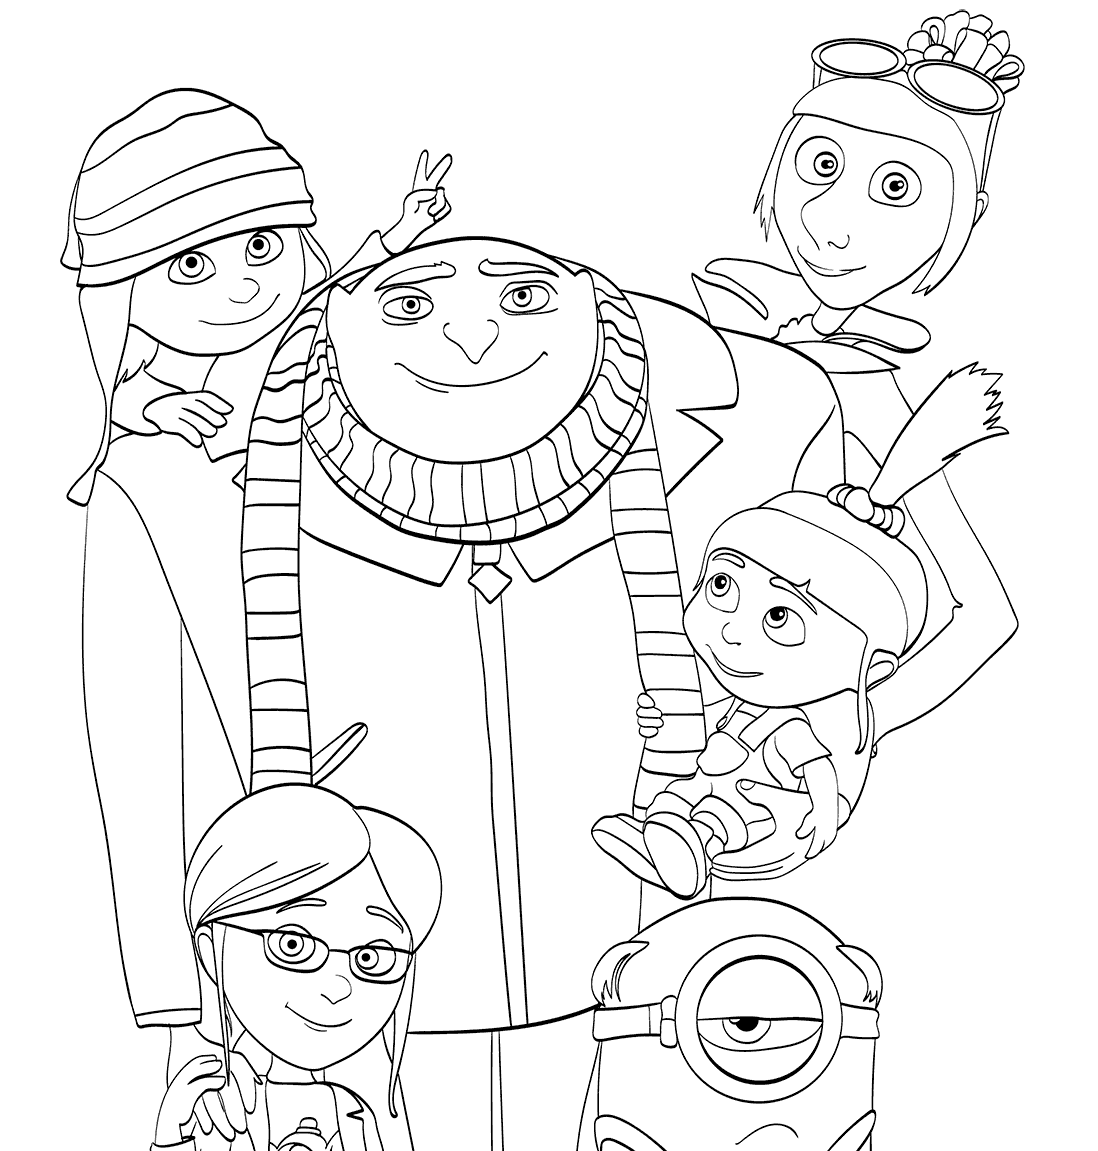 free coloring pages despicable me printable despicable me coloring pages for kids cool2bkids me coloring despicable pages free